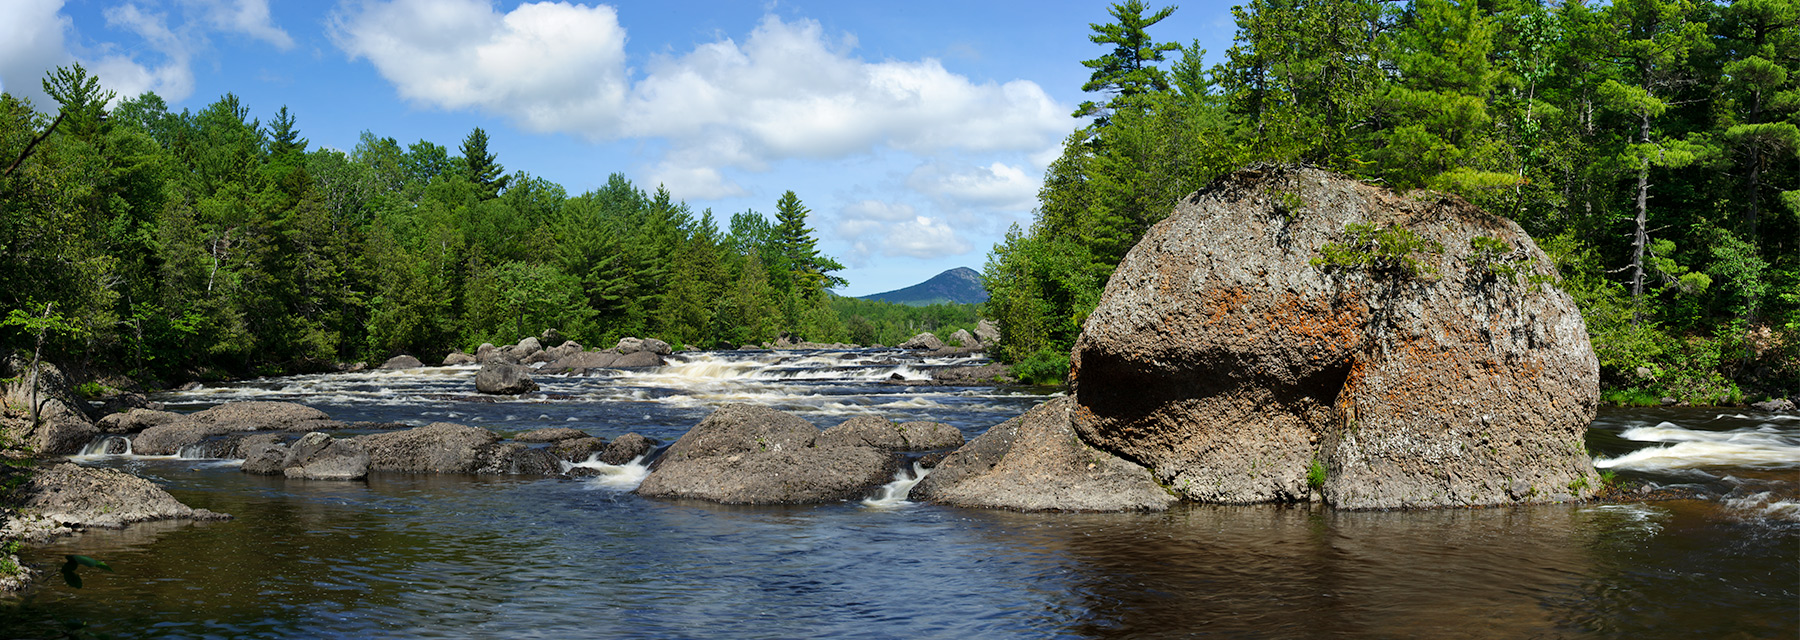 Haskell Rock, East Branch Penobscot River, KWWNM  - By Mark Picard